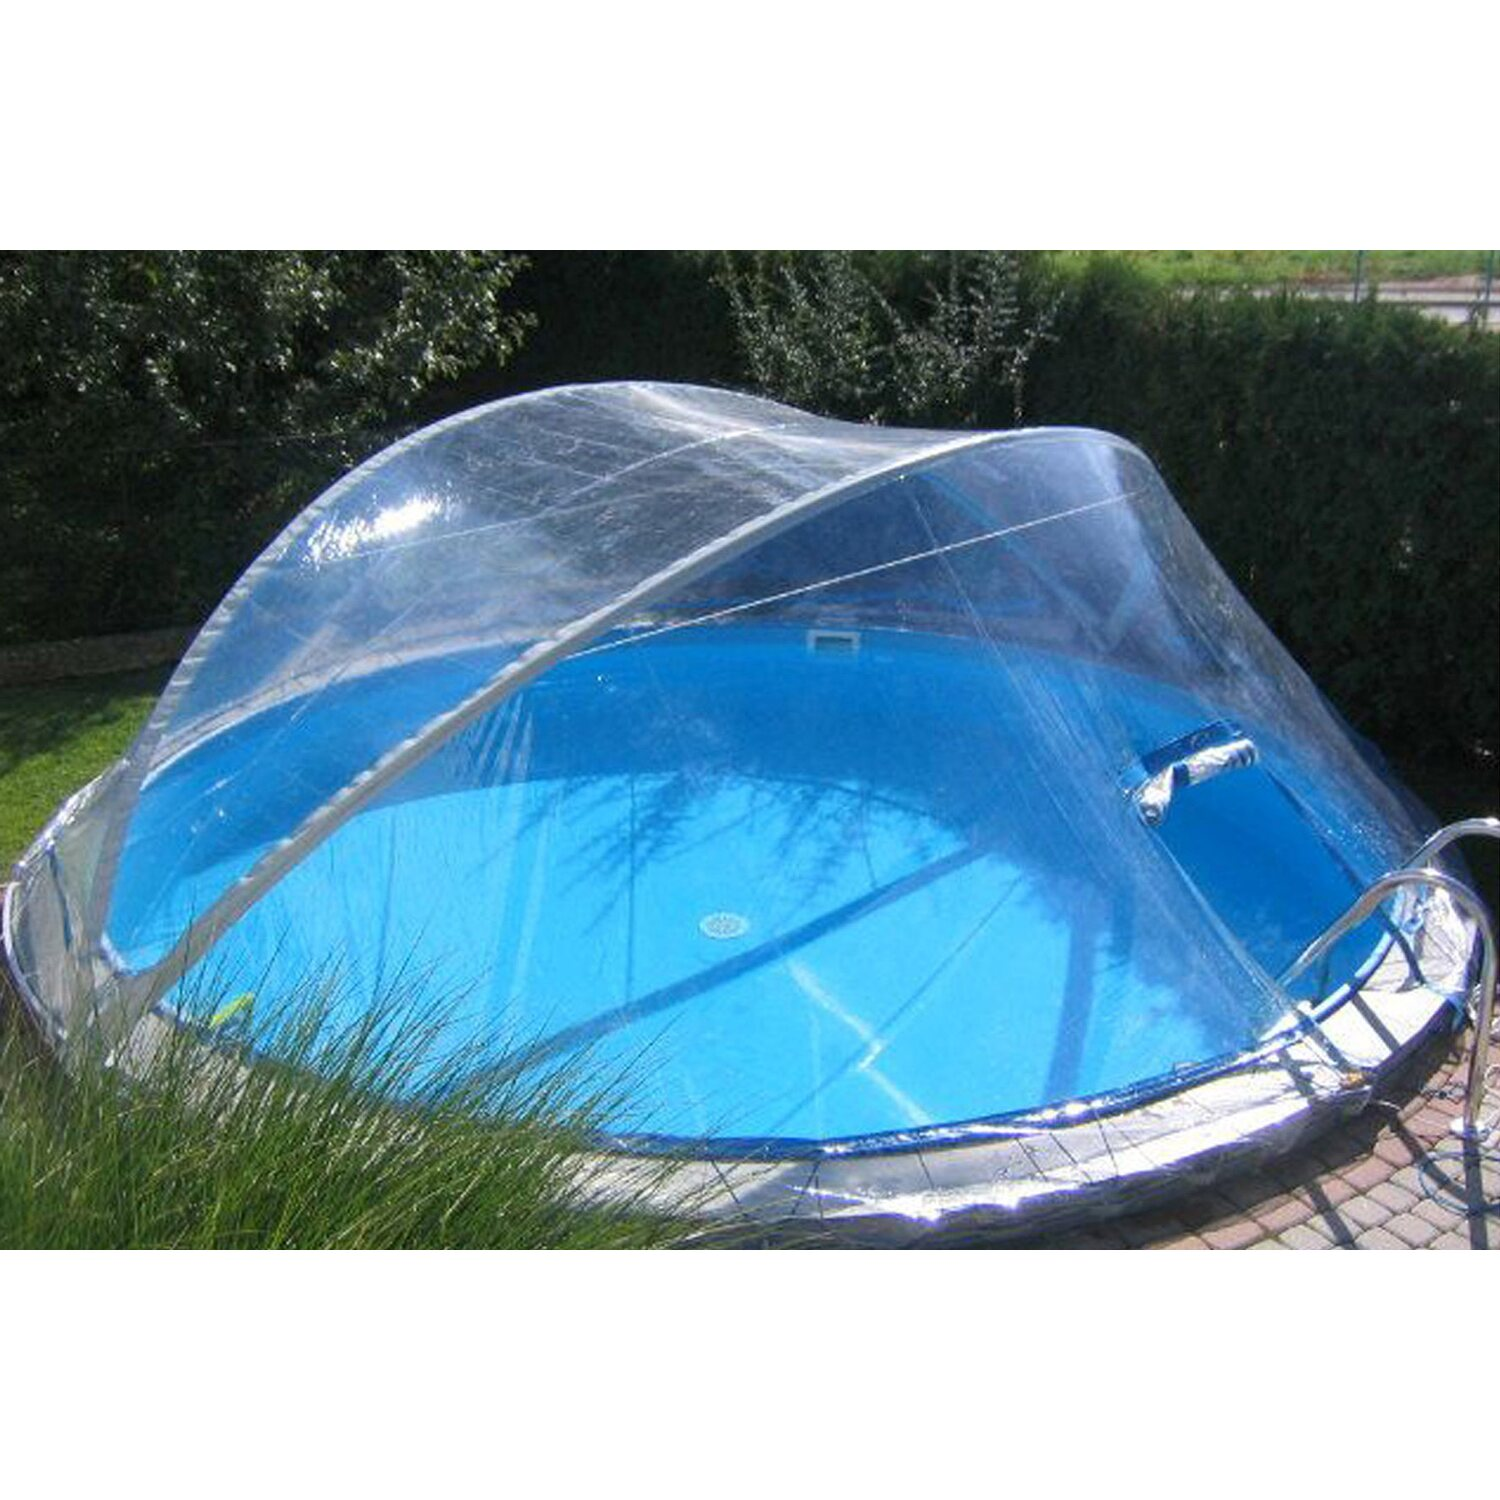 Summer fun pool berdachung cabrio dome f r ovalbecken 320 for Obi intex pool